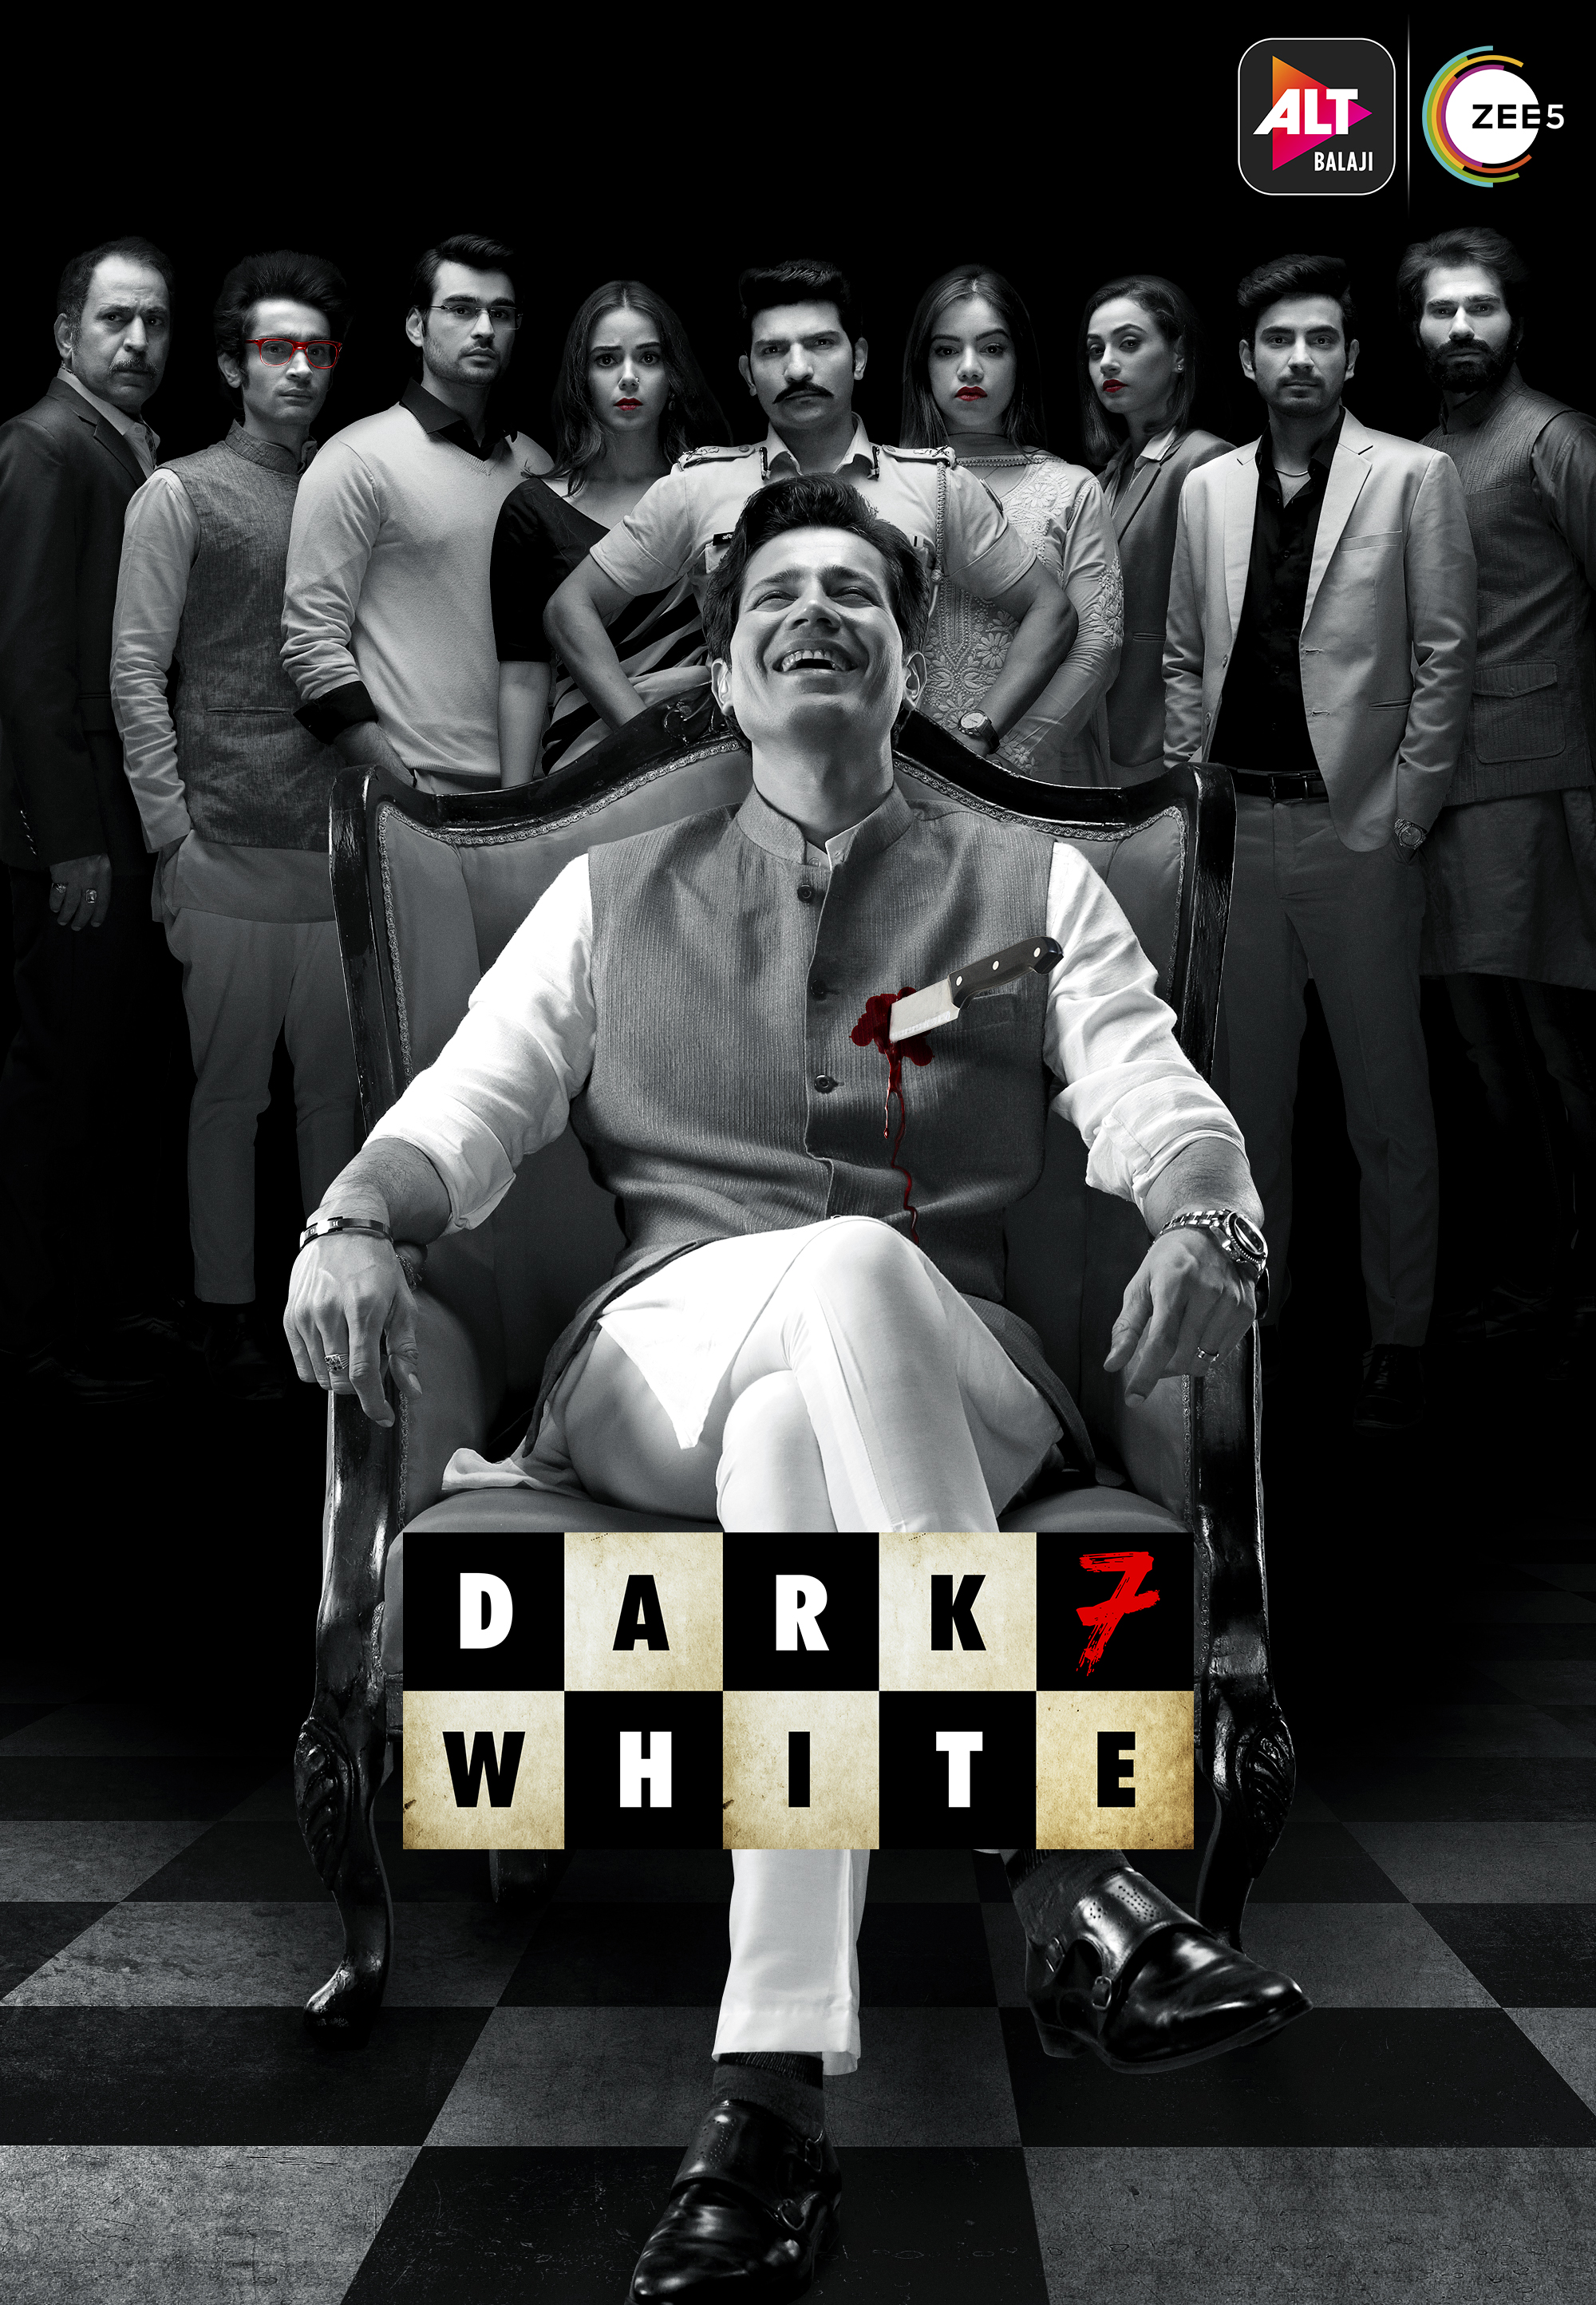 Dark 7 White 2020 S01 Hindi Complete ALTBalaji Original Web Series 1080p HDRip 3GB Download